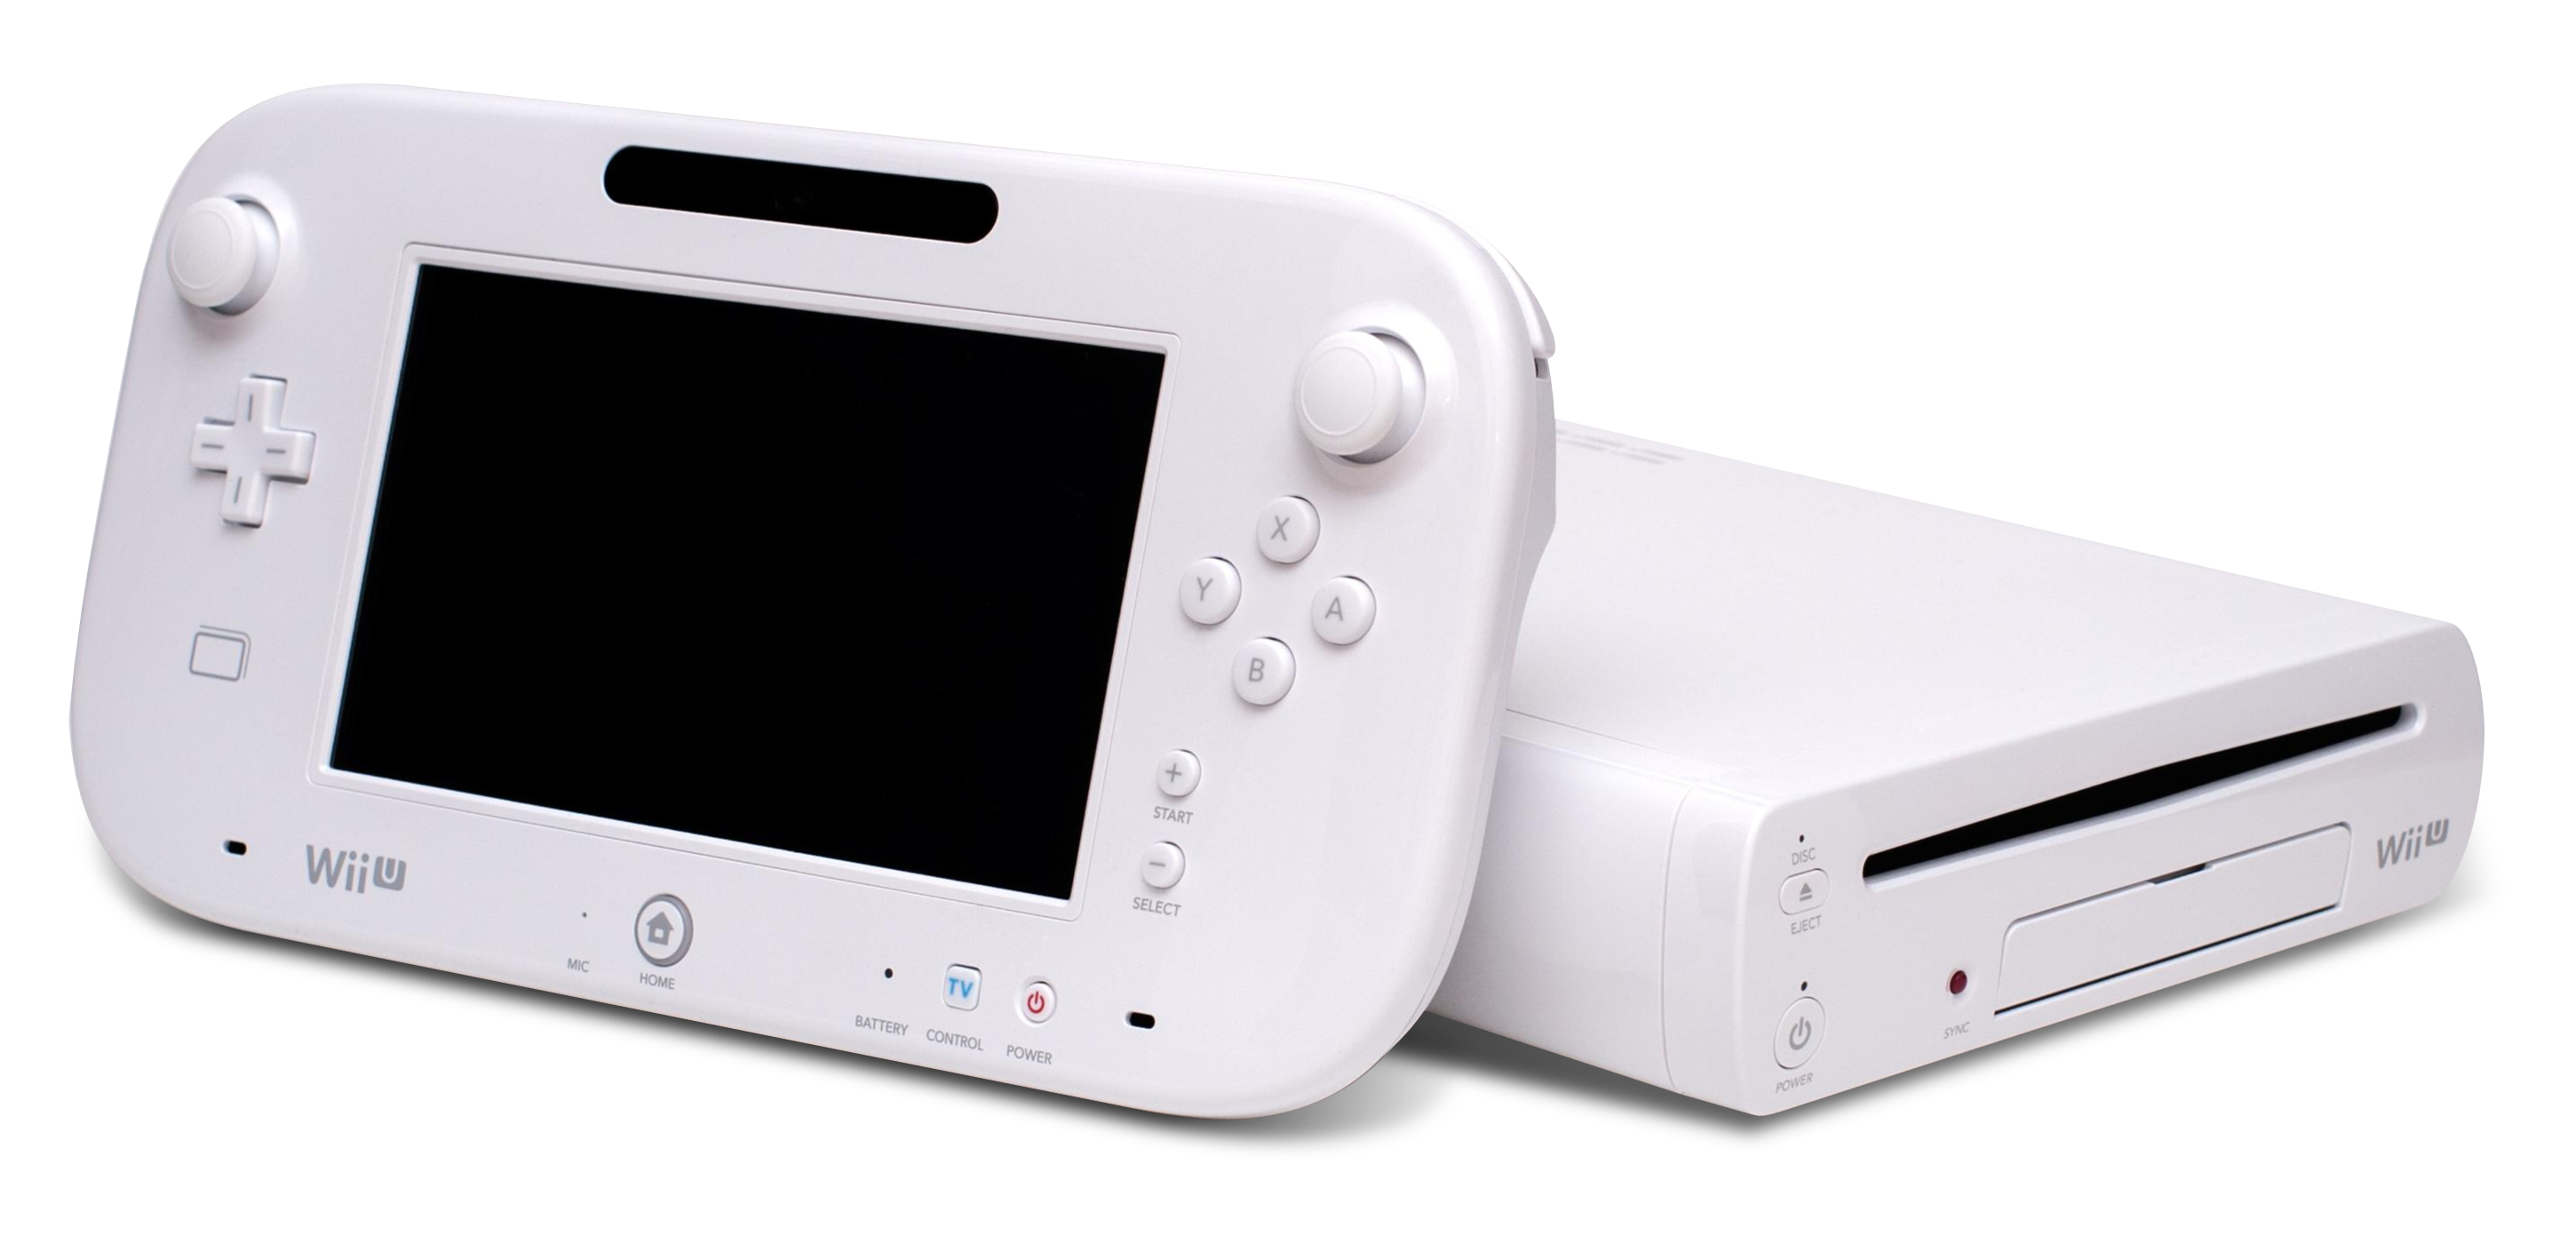 File:Wii U Console and Gamepad.png.